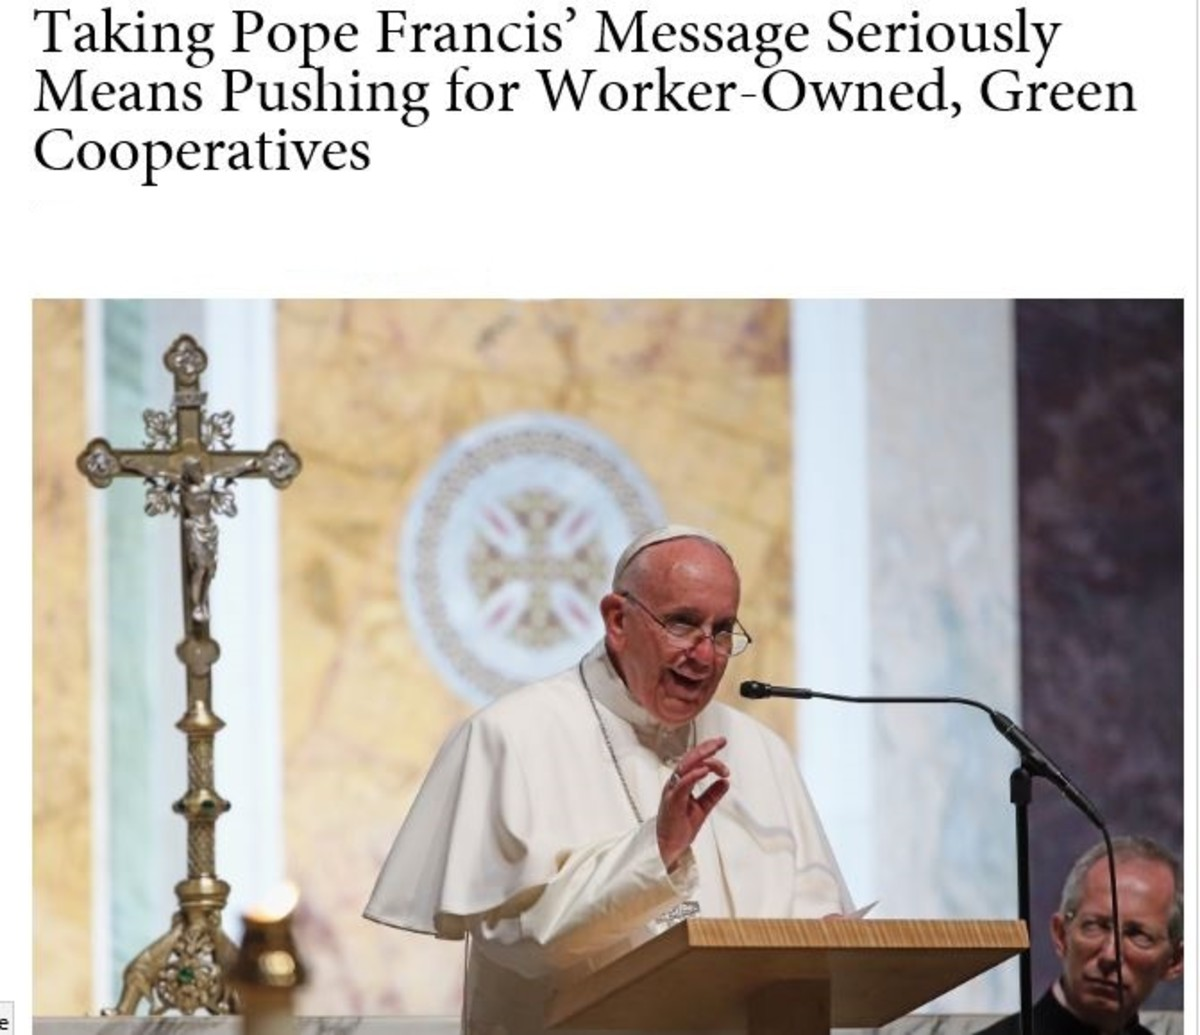 Pope says that constantly expanding business is not good for people or the planet